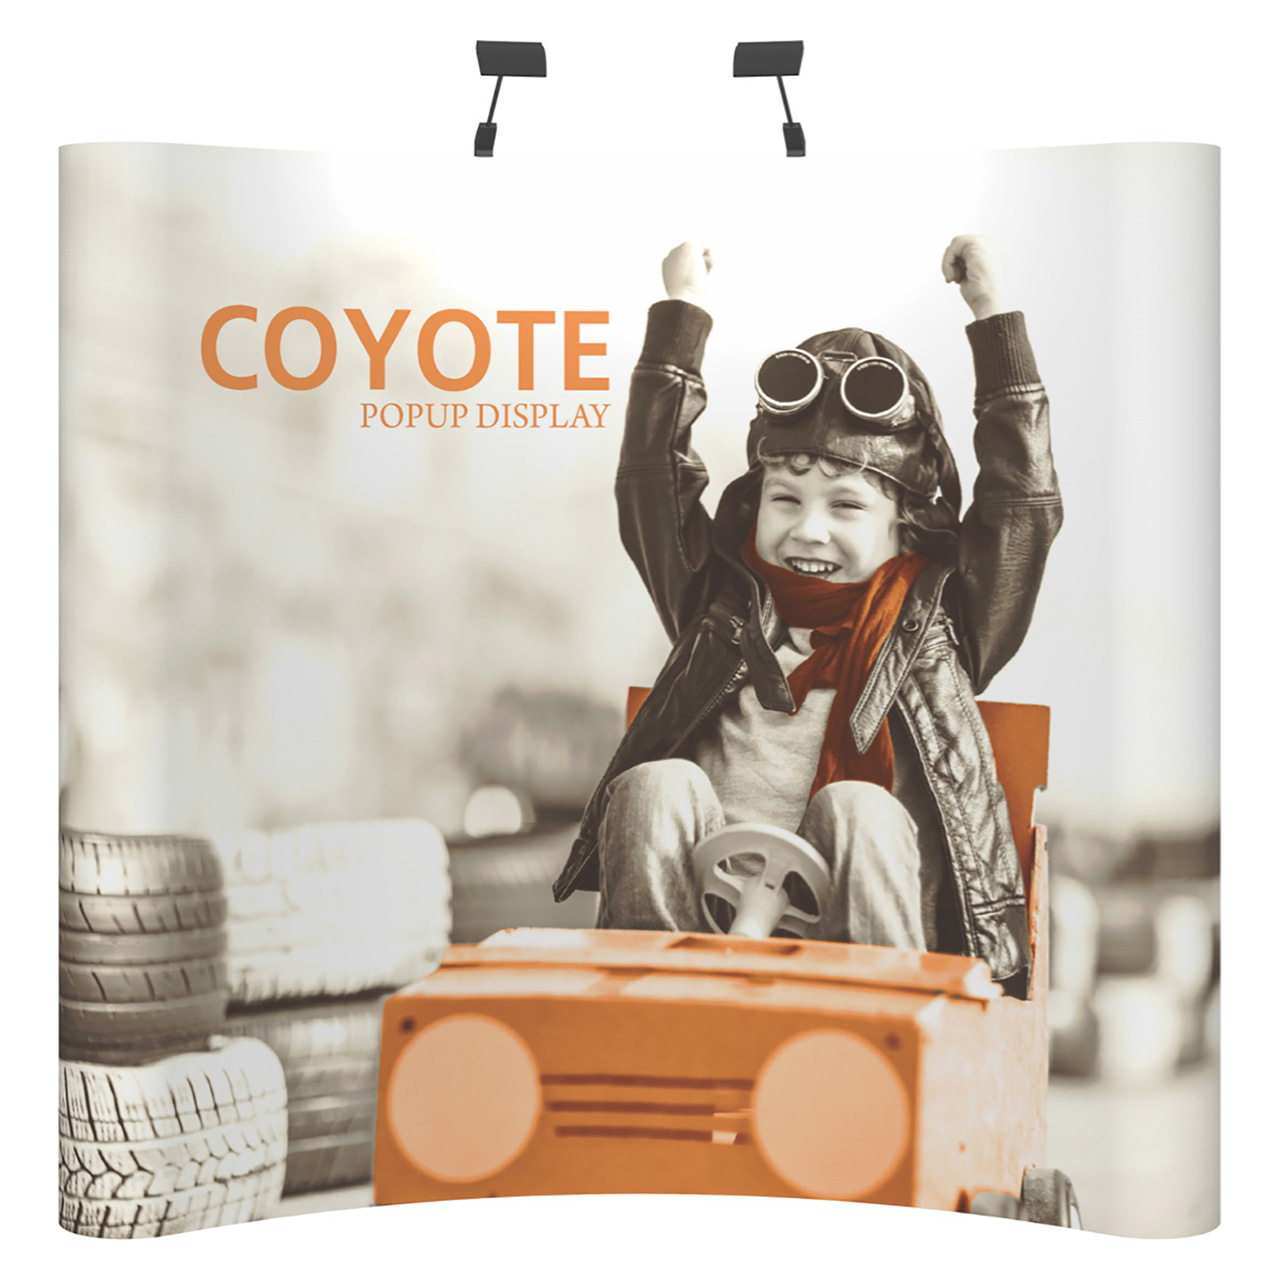 coyote-8ft-curved-full-height-popup-display-full-graphic-front.jpg